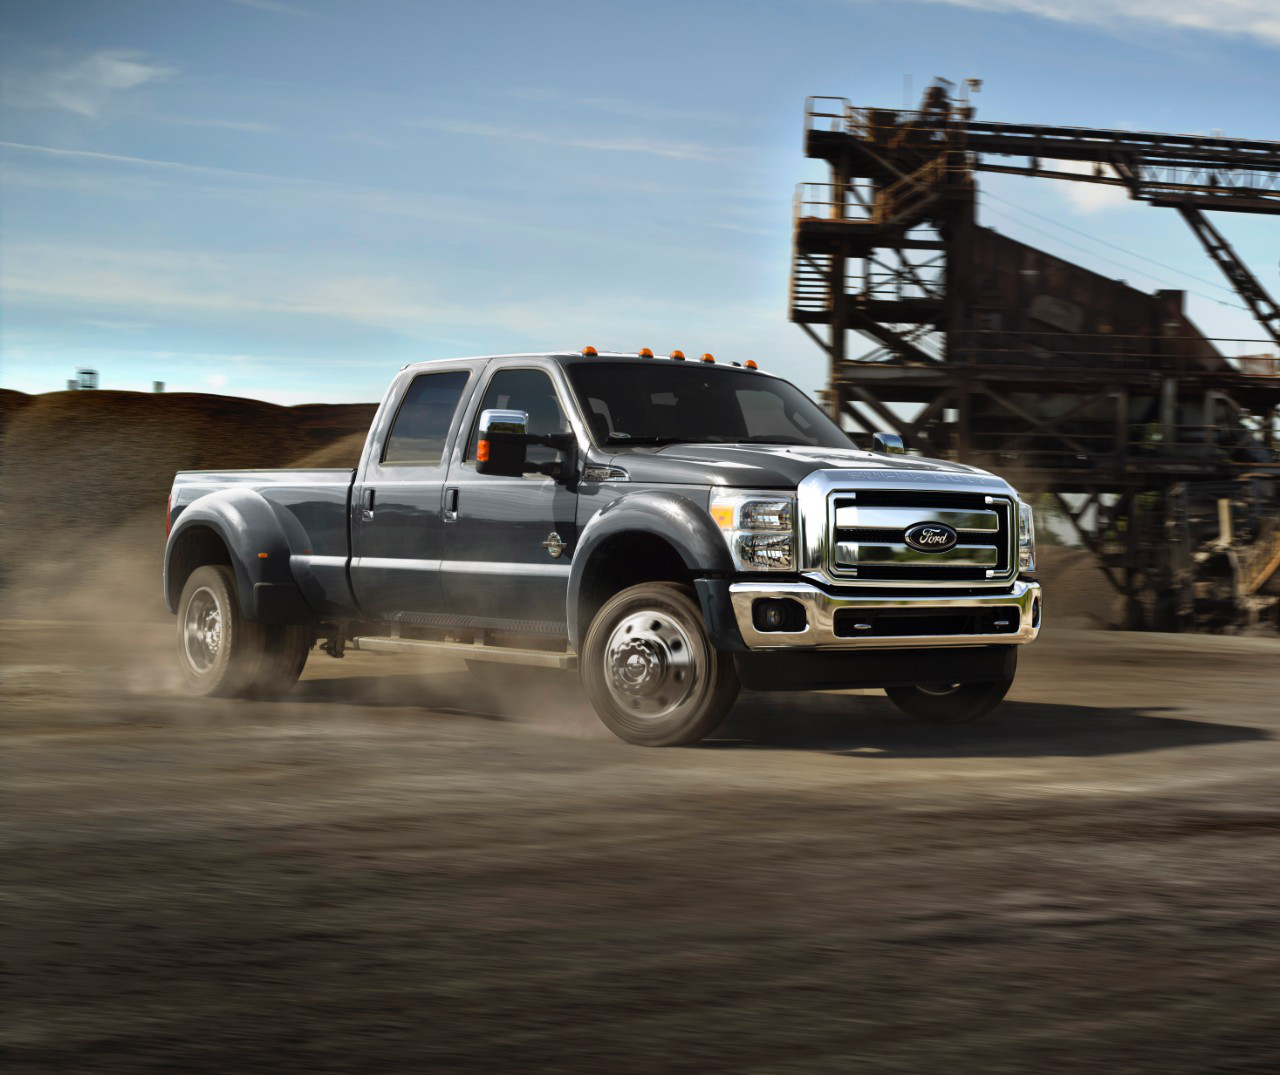 2015 FordF-450 Super Duty